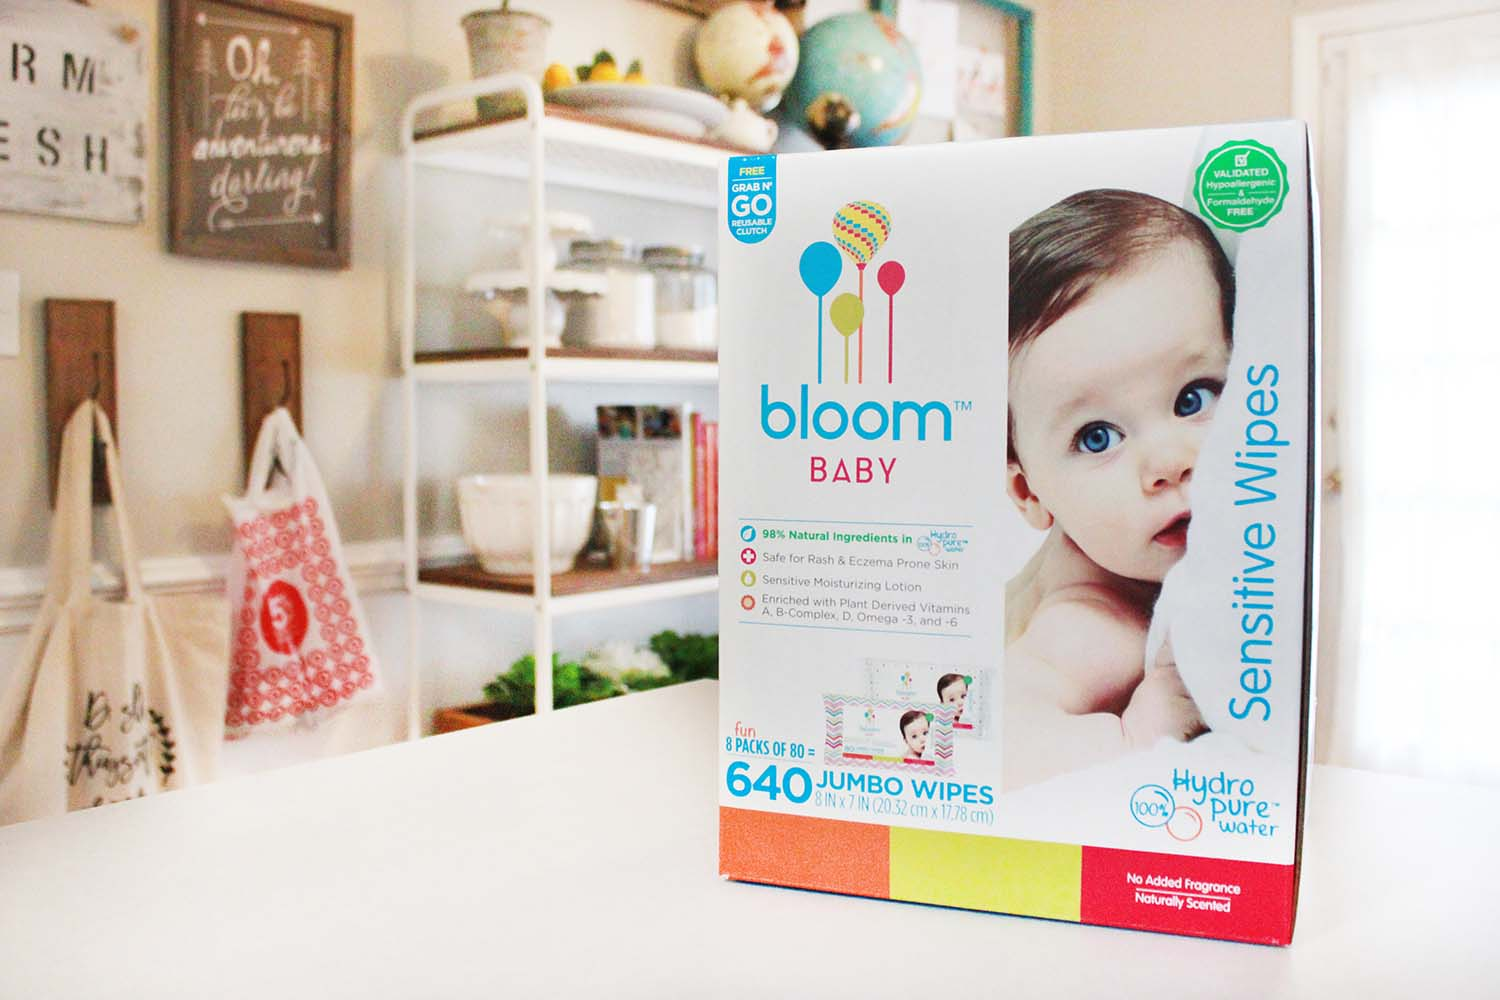 Target Baby Wipes Favorite Baby Items Bloom Baby Wipes At Target At Home With Natalie